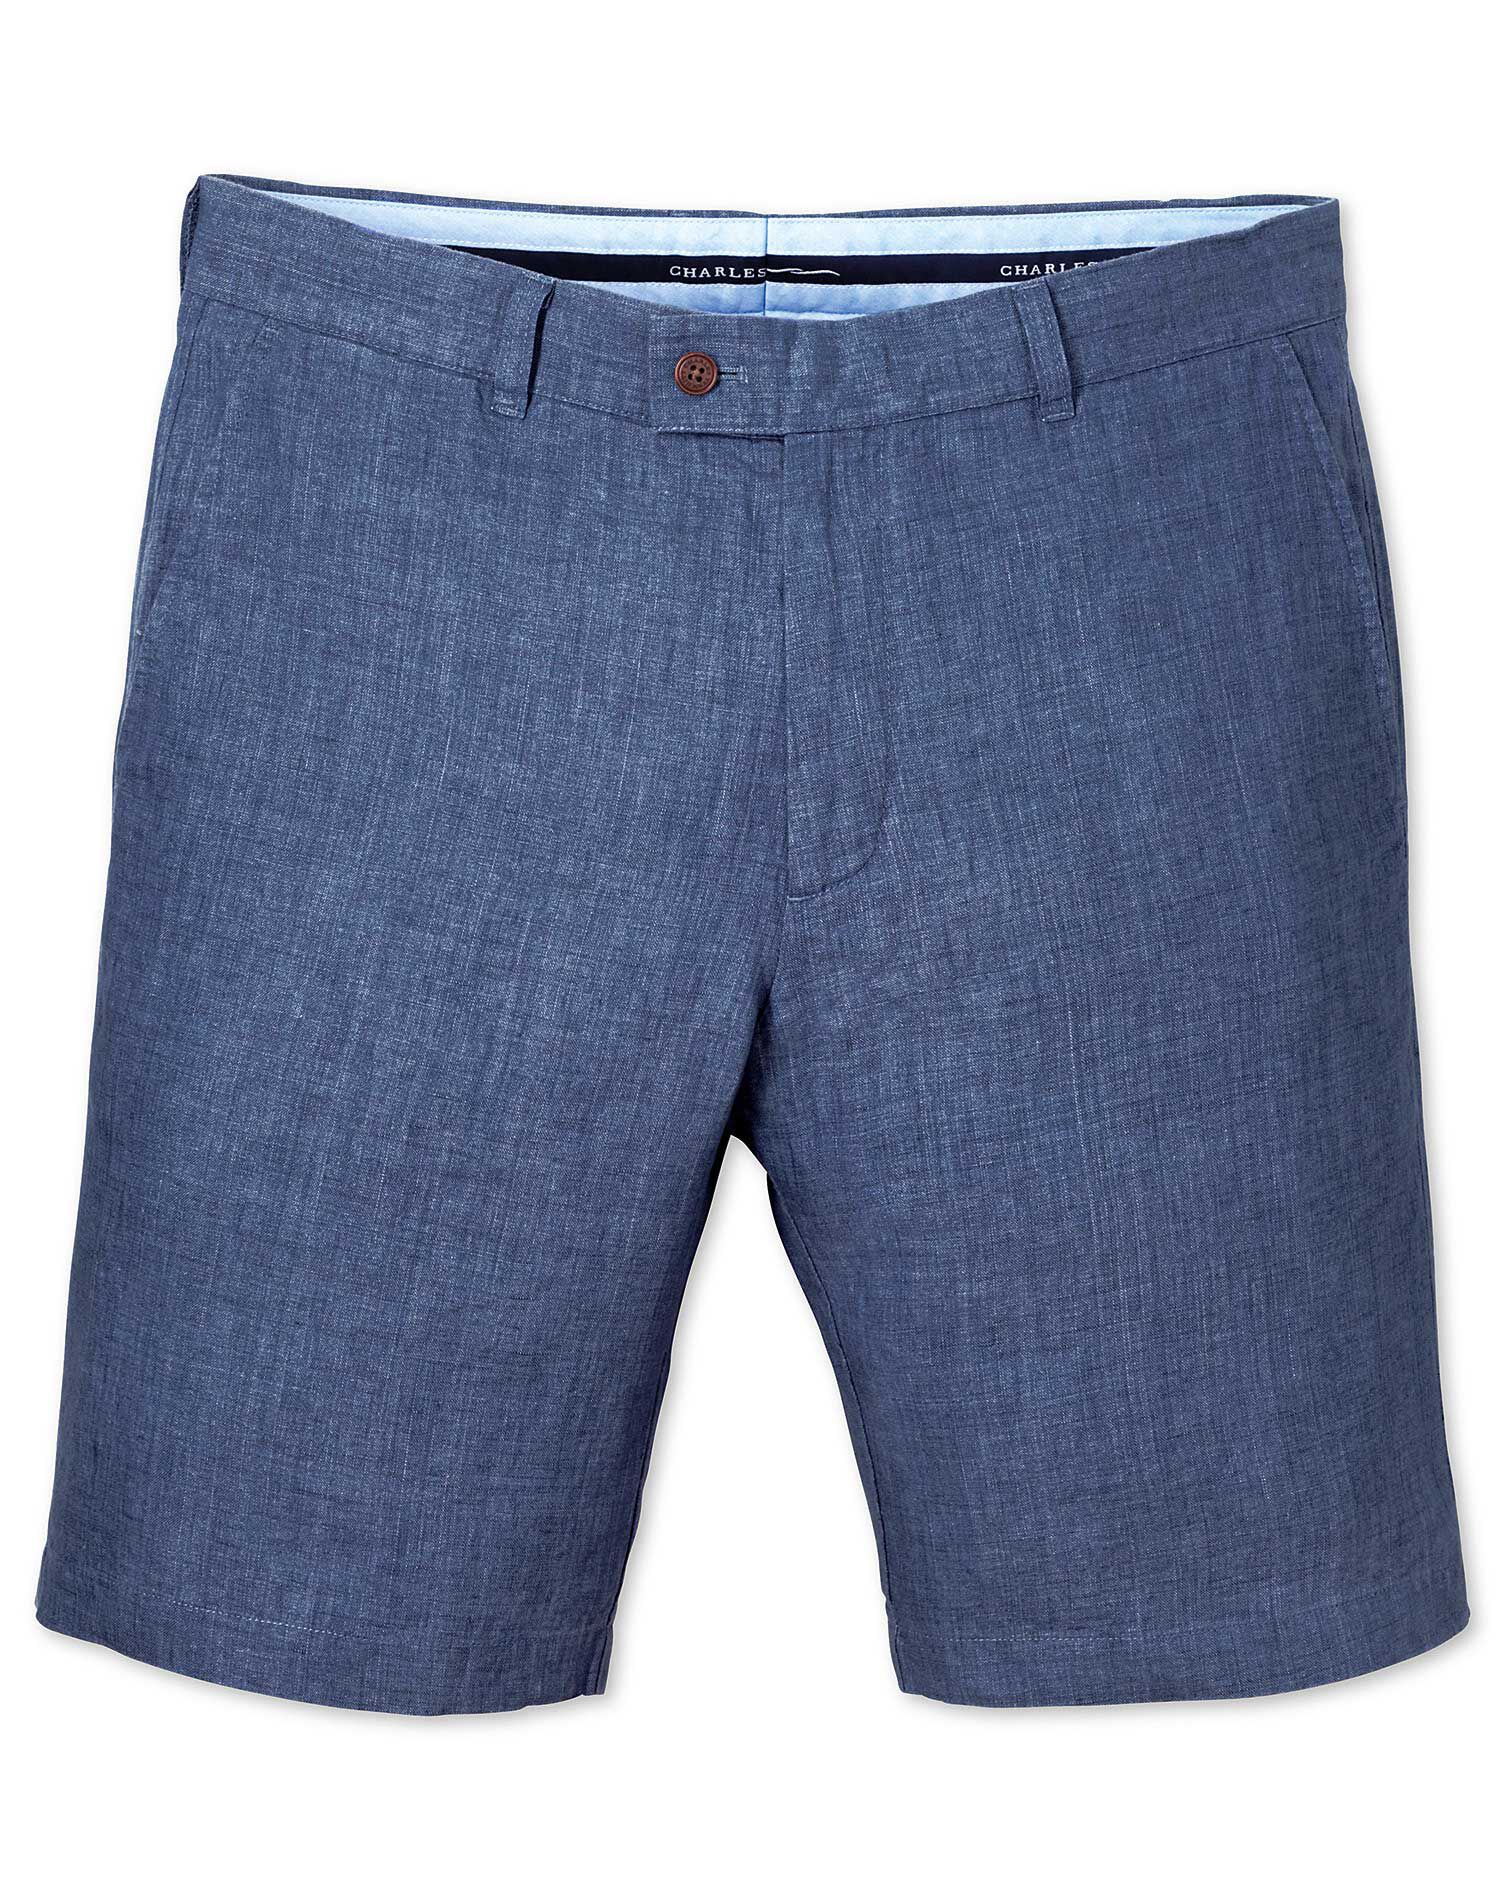 Blue Slim Fit Linen Shorts Size 38 by Charles Tyrwhitt